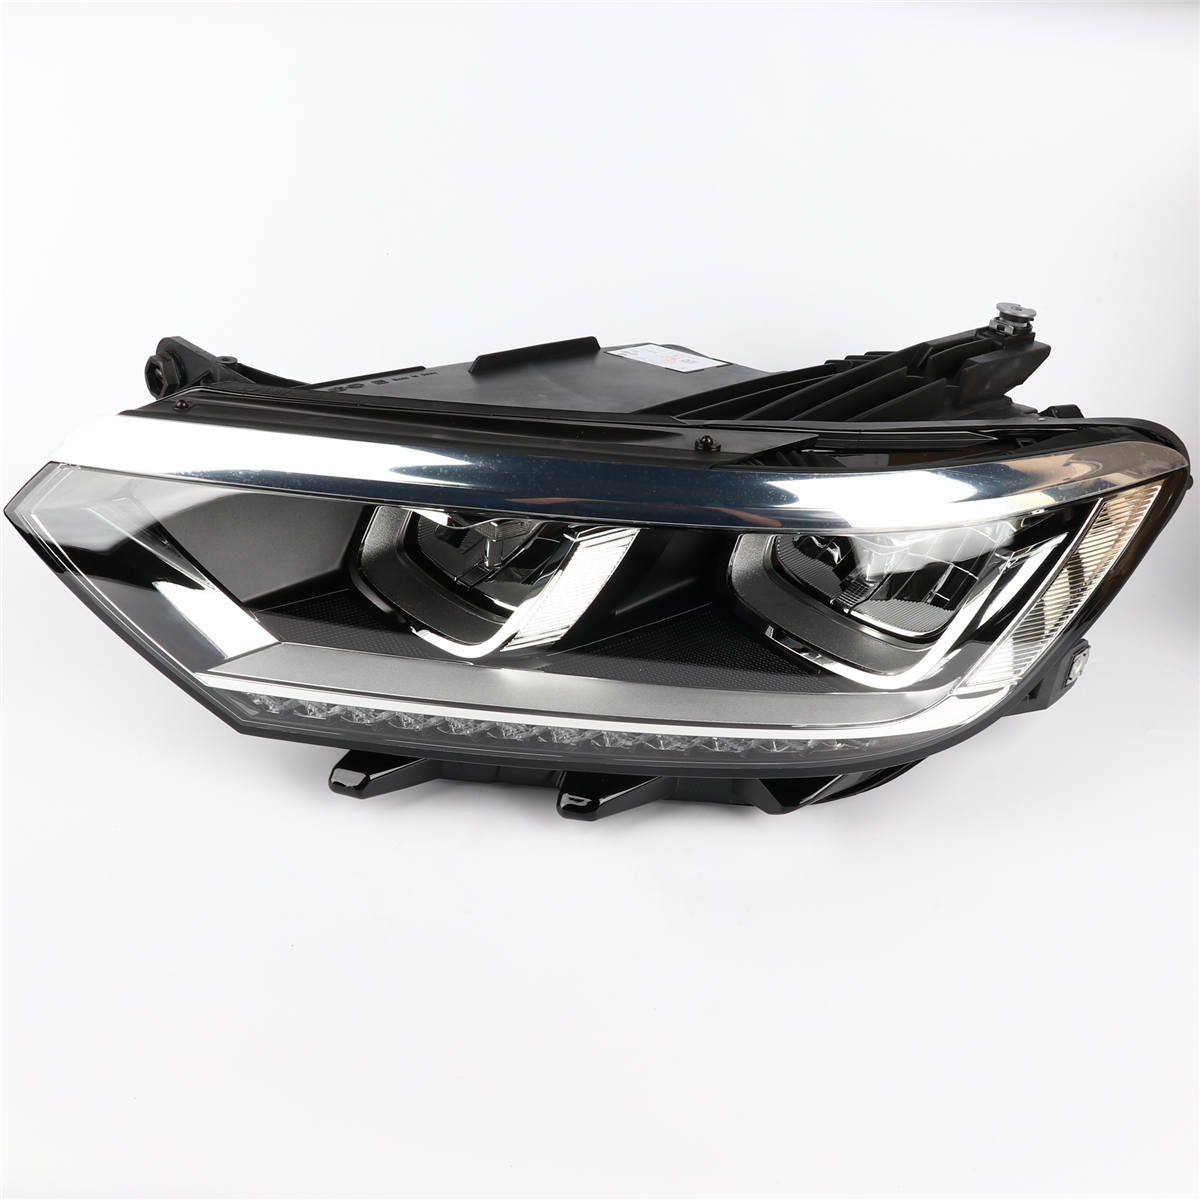 with Warranty High Quality 1Pcs Genuine Front Headlight Head Light Lamp Assembly Right Side For VW Passat B8 L3GD 941 036 right combination headlight assembly for lifan s4121200